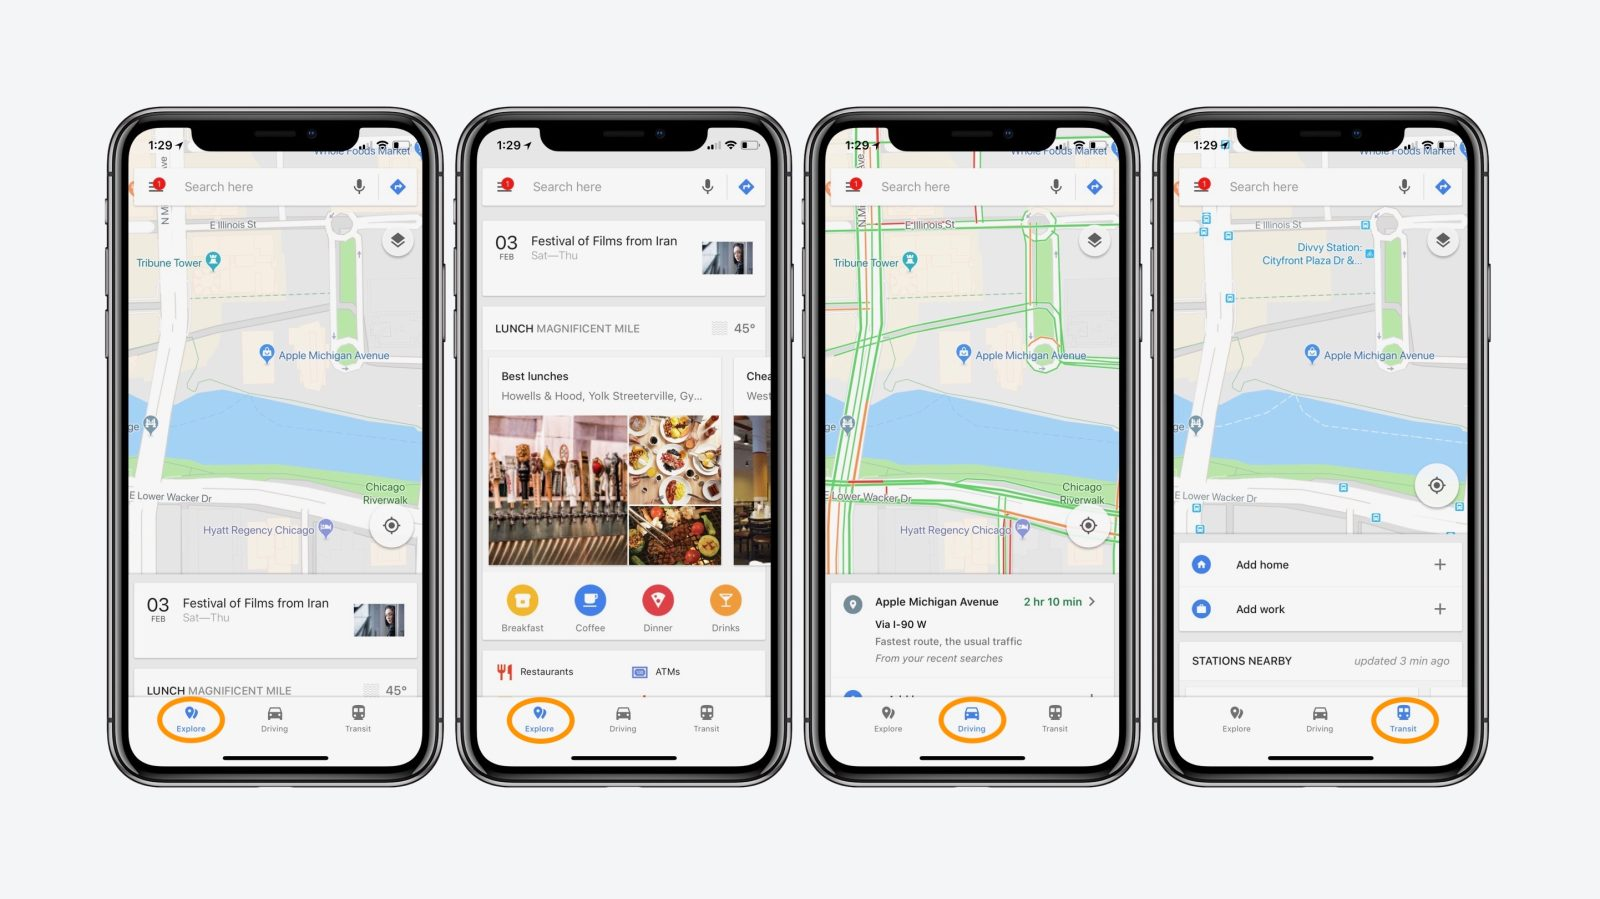 Google Maps iOS update adds new bottom bar with real-time transit ...